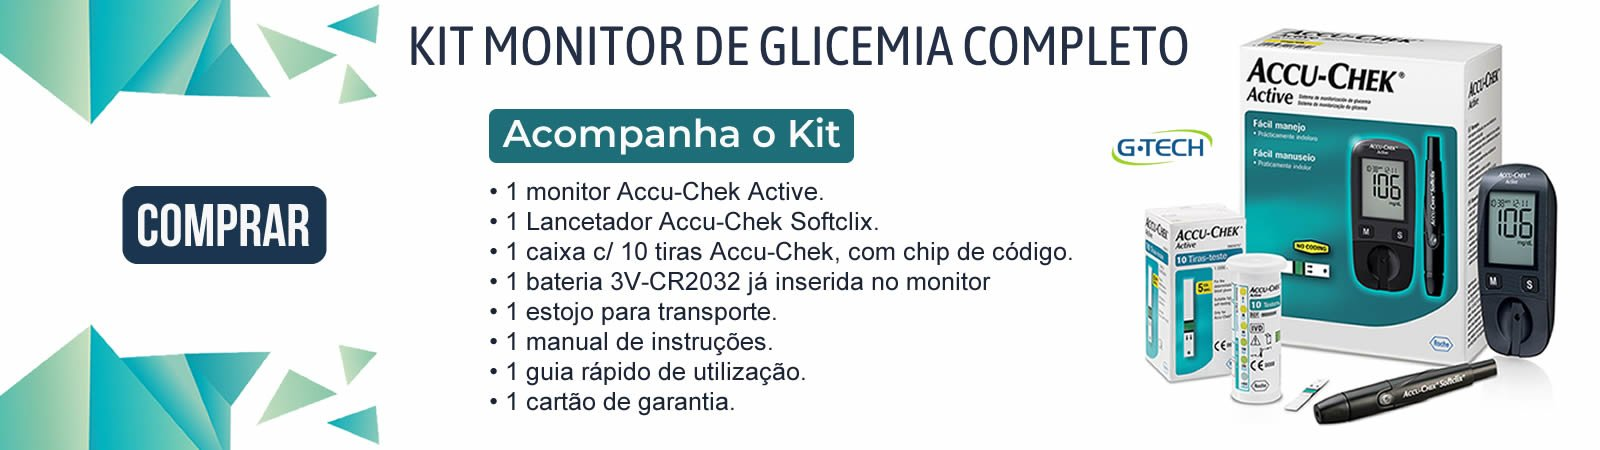 Kit Monitor de Glicemia G-tech